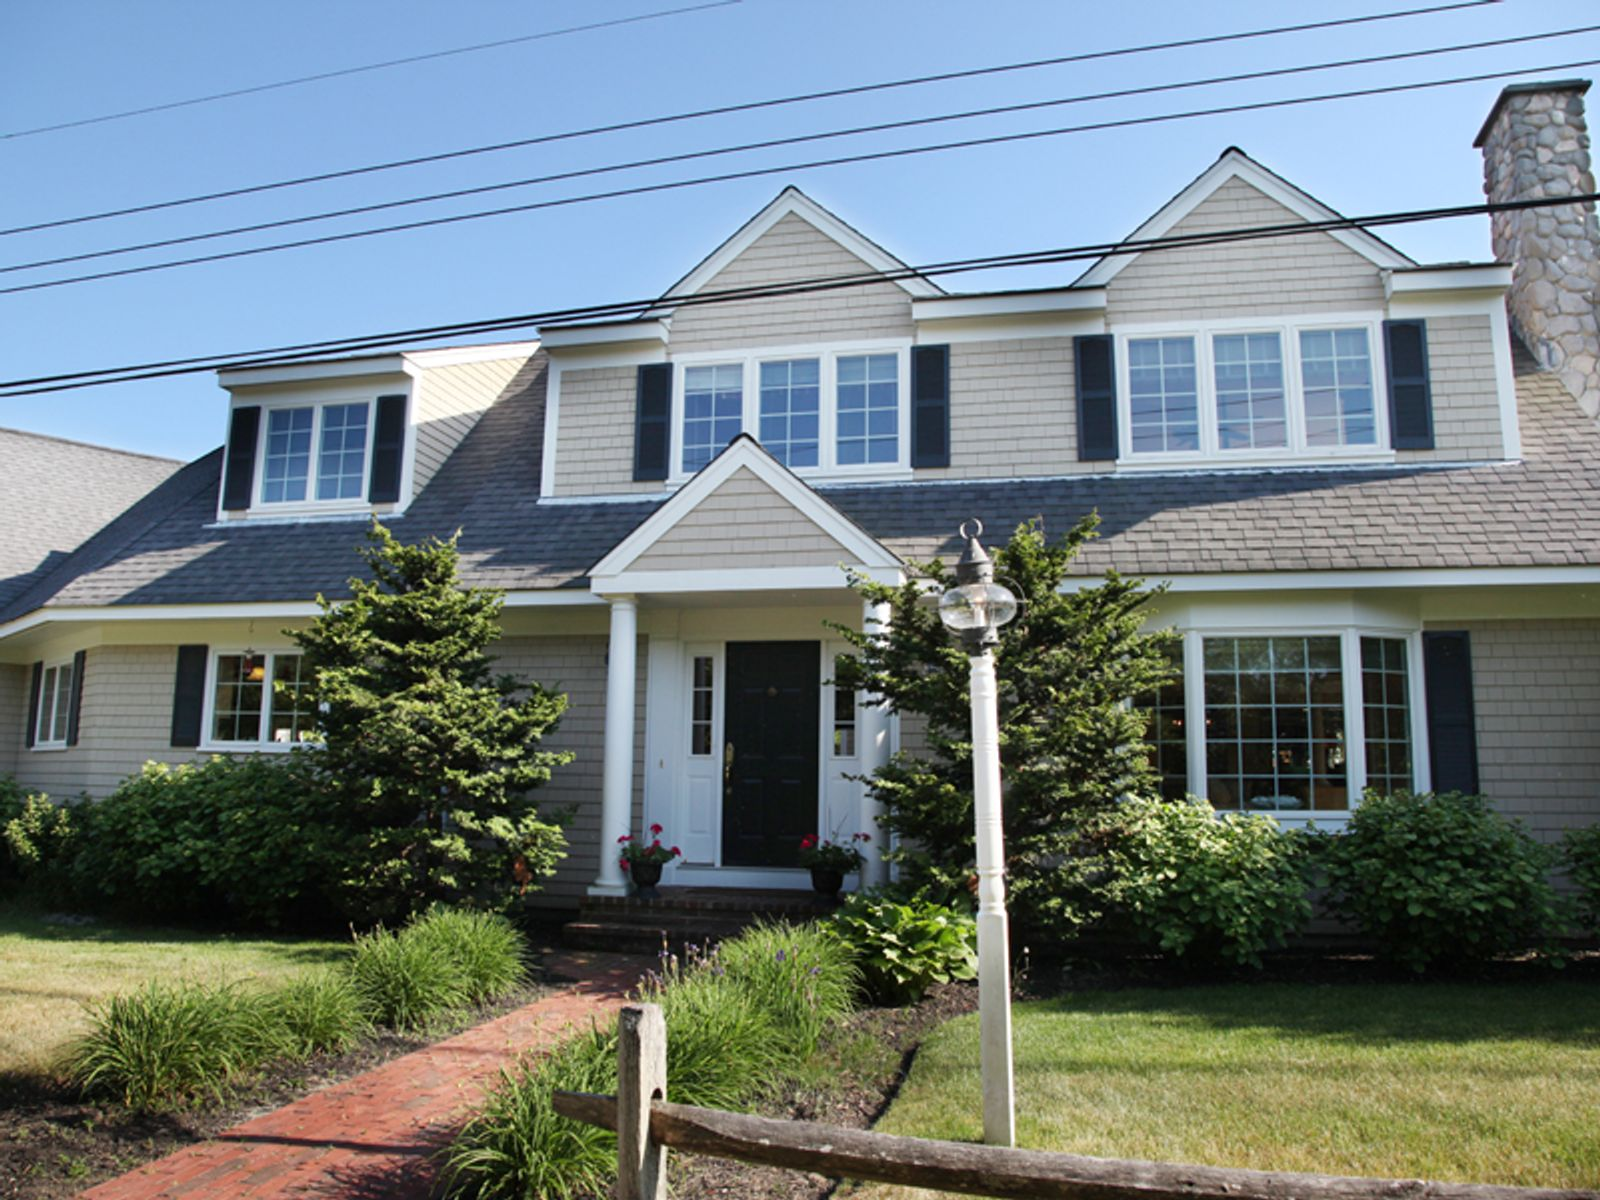 Summer Get-Away, Cummaquid MA Single Family Home - Cape Cod Real Estate